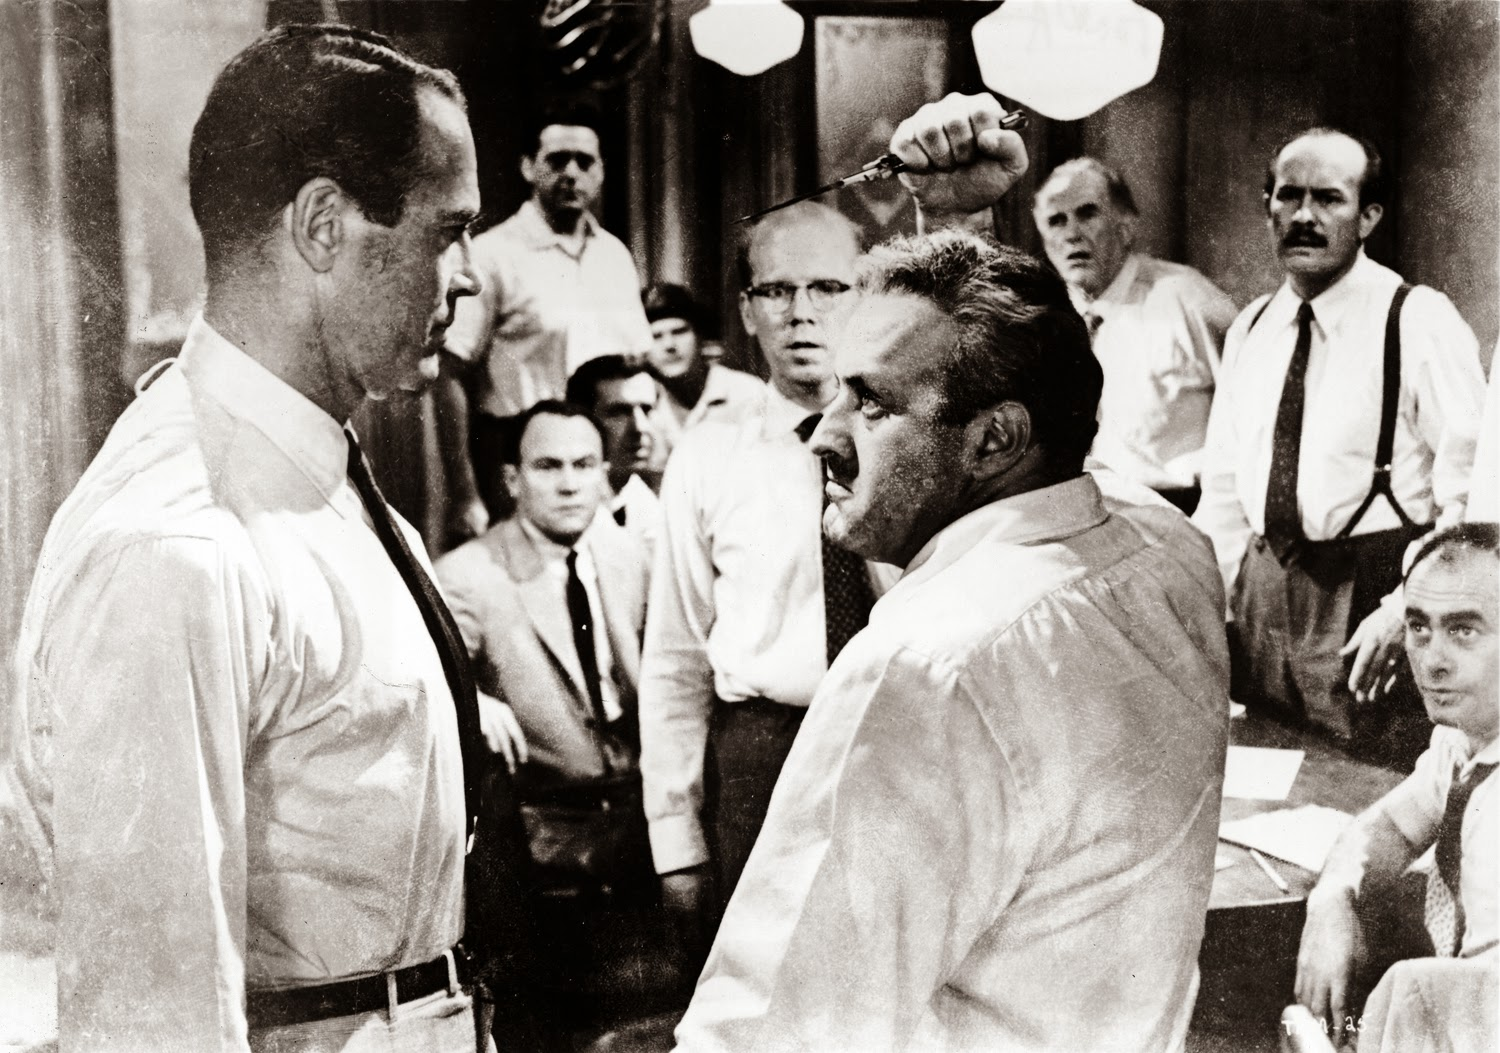 """an overview of the murder trial in the story 12 angry men """"12 angry men"""" focuses on a jury's deliberations in a capital murder case a 12-man jury is sent to begin deliberations in the first-degree murder trial of an 18-year-old latino accused in the stabbing death of his father, where a guilty verdict means an automatic death sentence."""